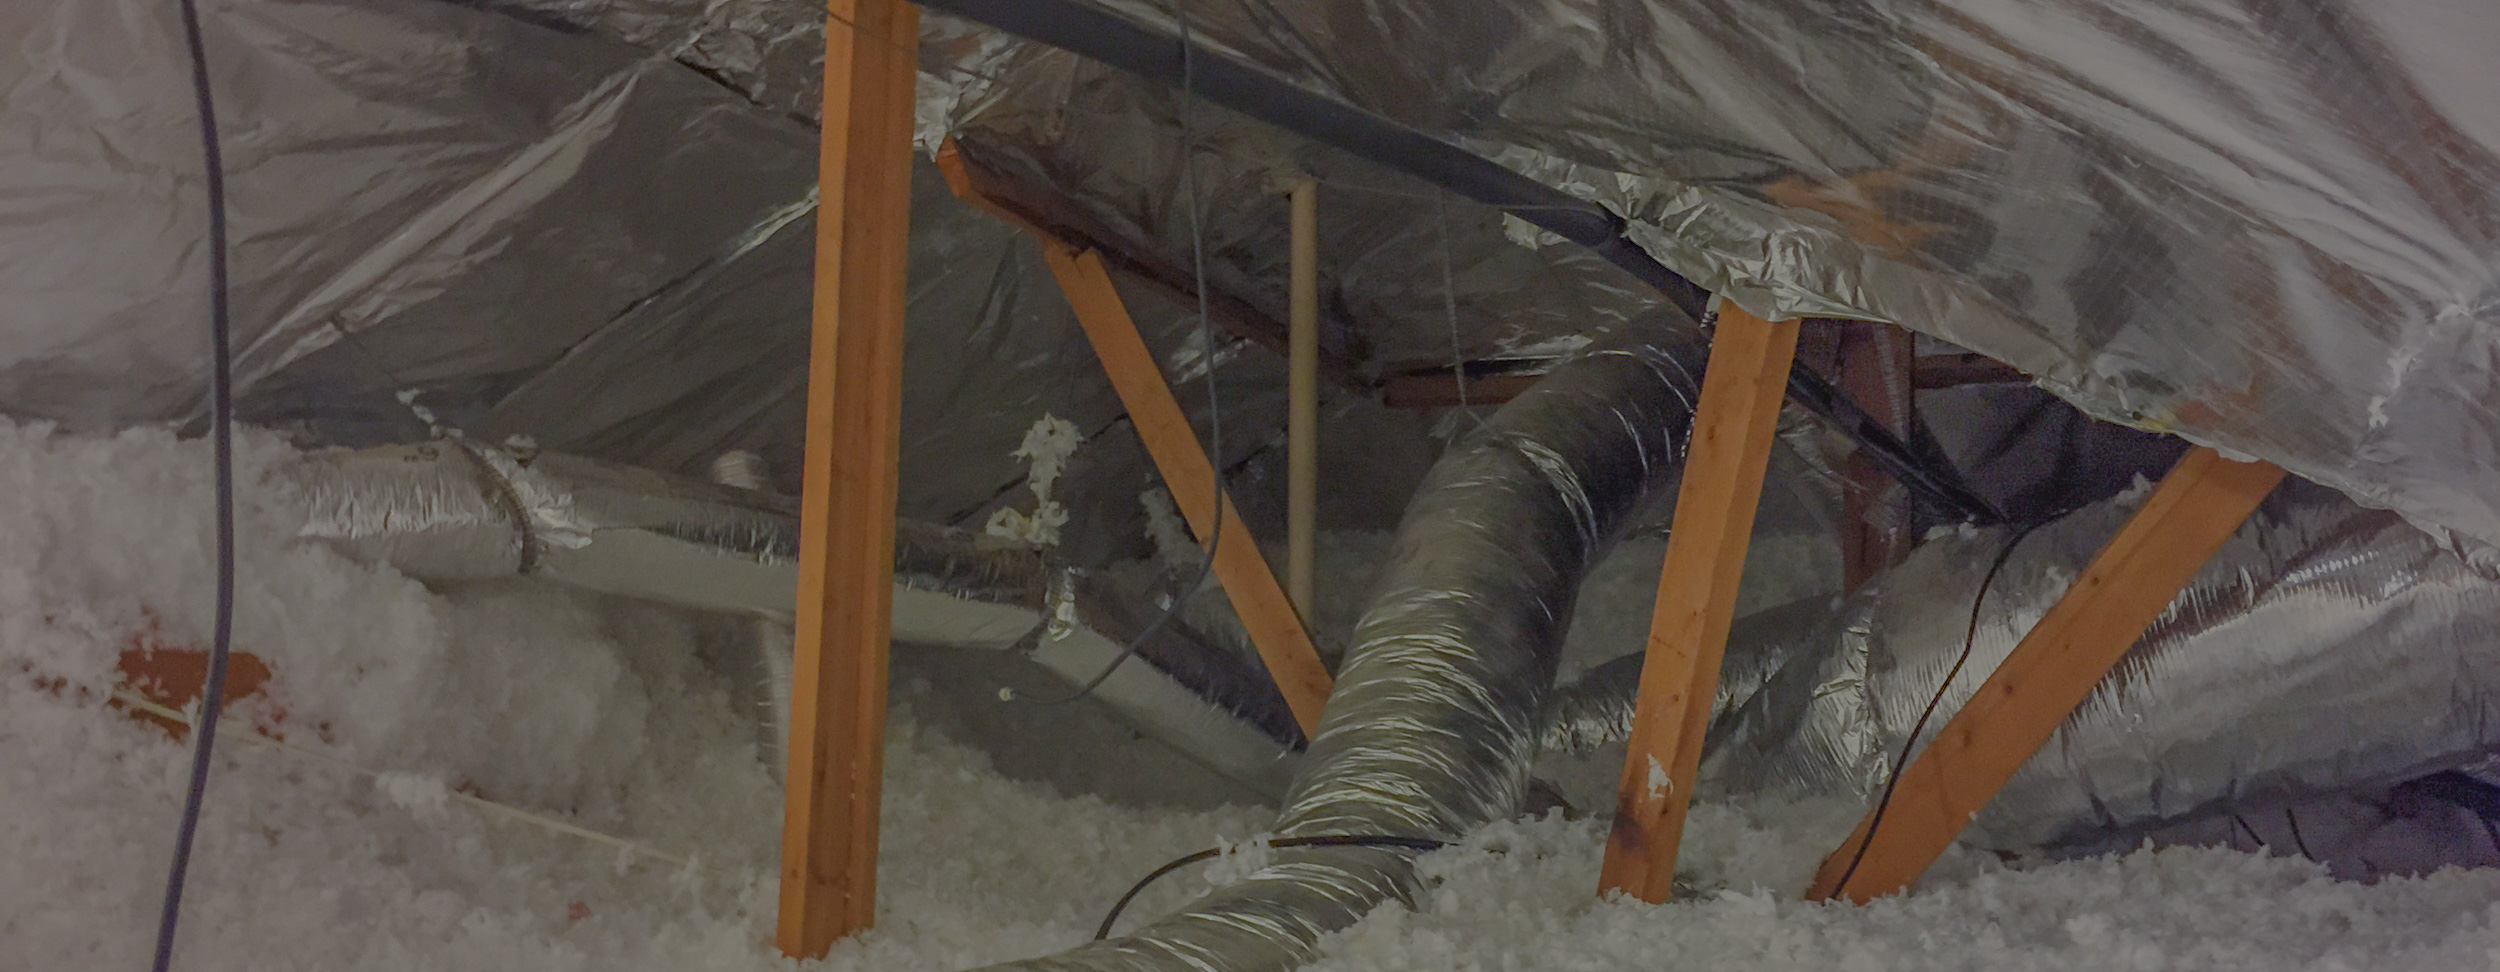 Attic Radiant Barrier | DFW Air Care